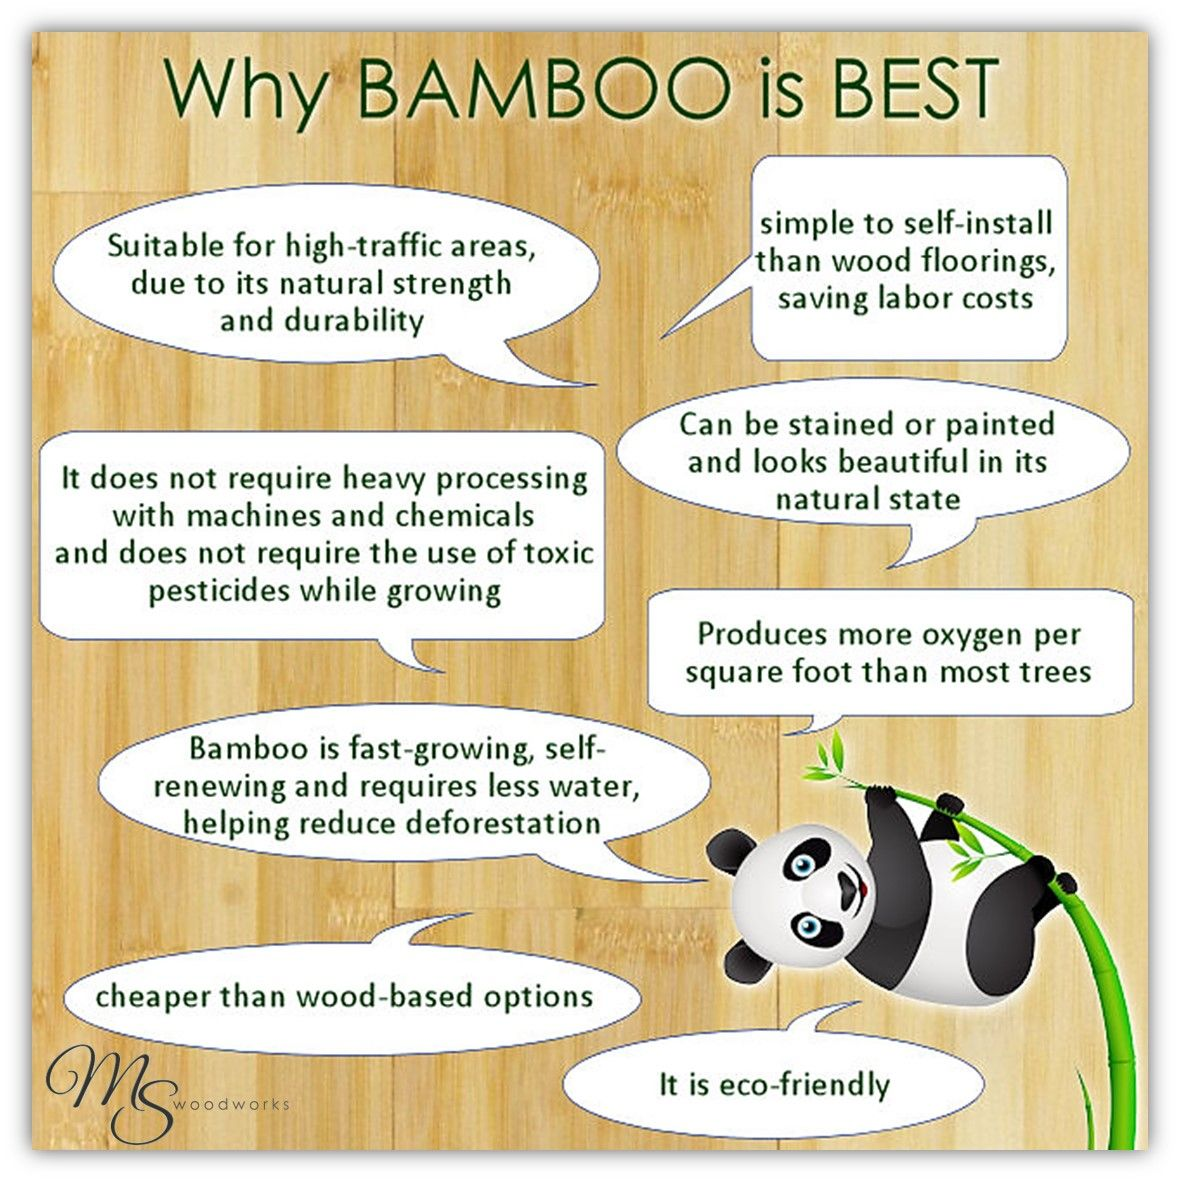 A bamboo floor, despite its rapid growth, proves to be extremely strong when cured and can handle the elements and high traffic areas. Additionally, bamboo floors need to be refinished as, if not less, frequently than other popular flooring surfaces.